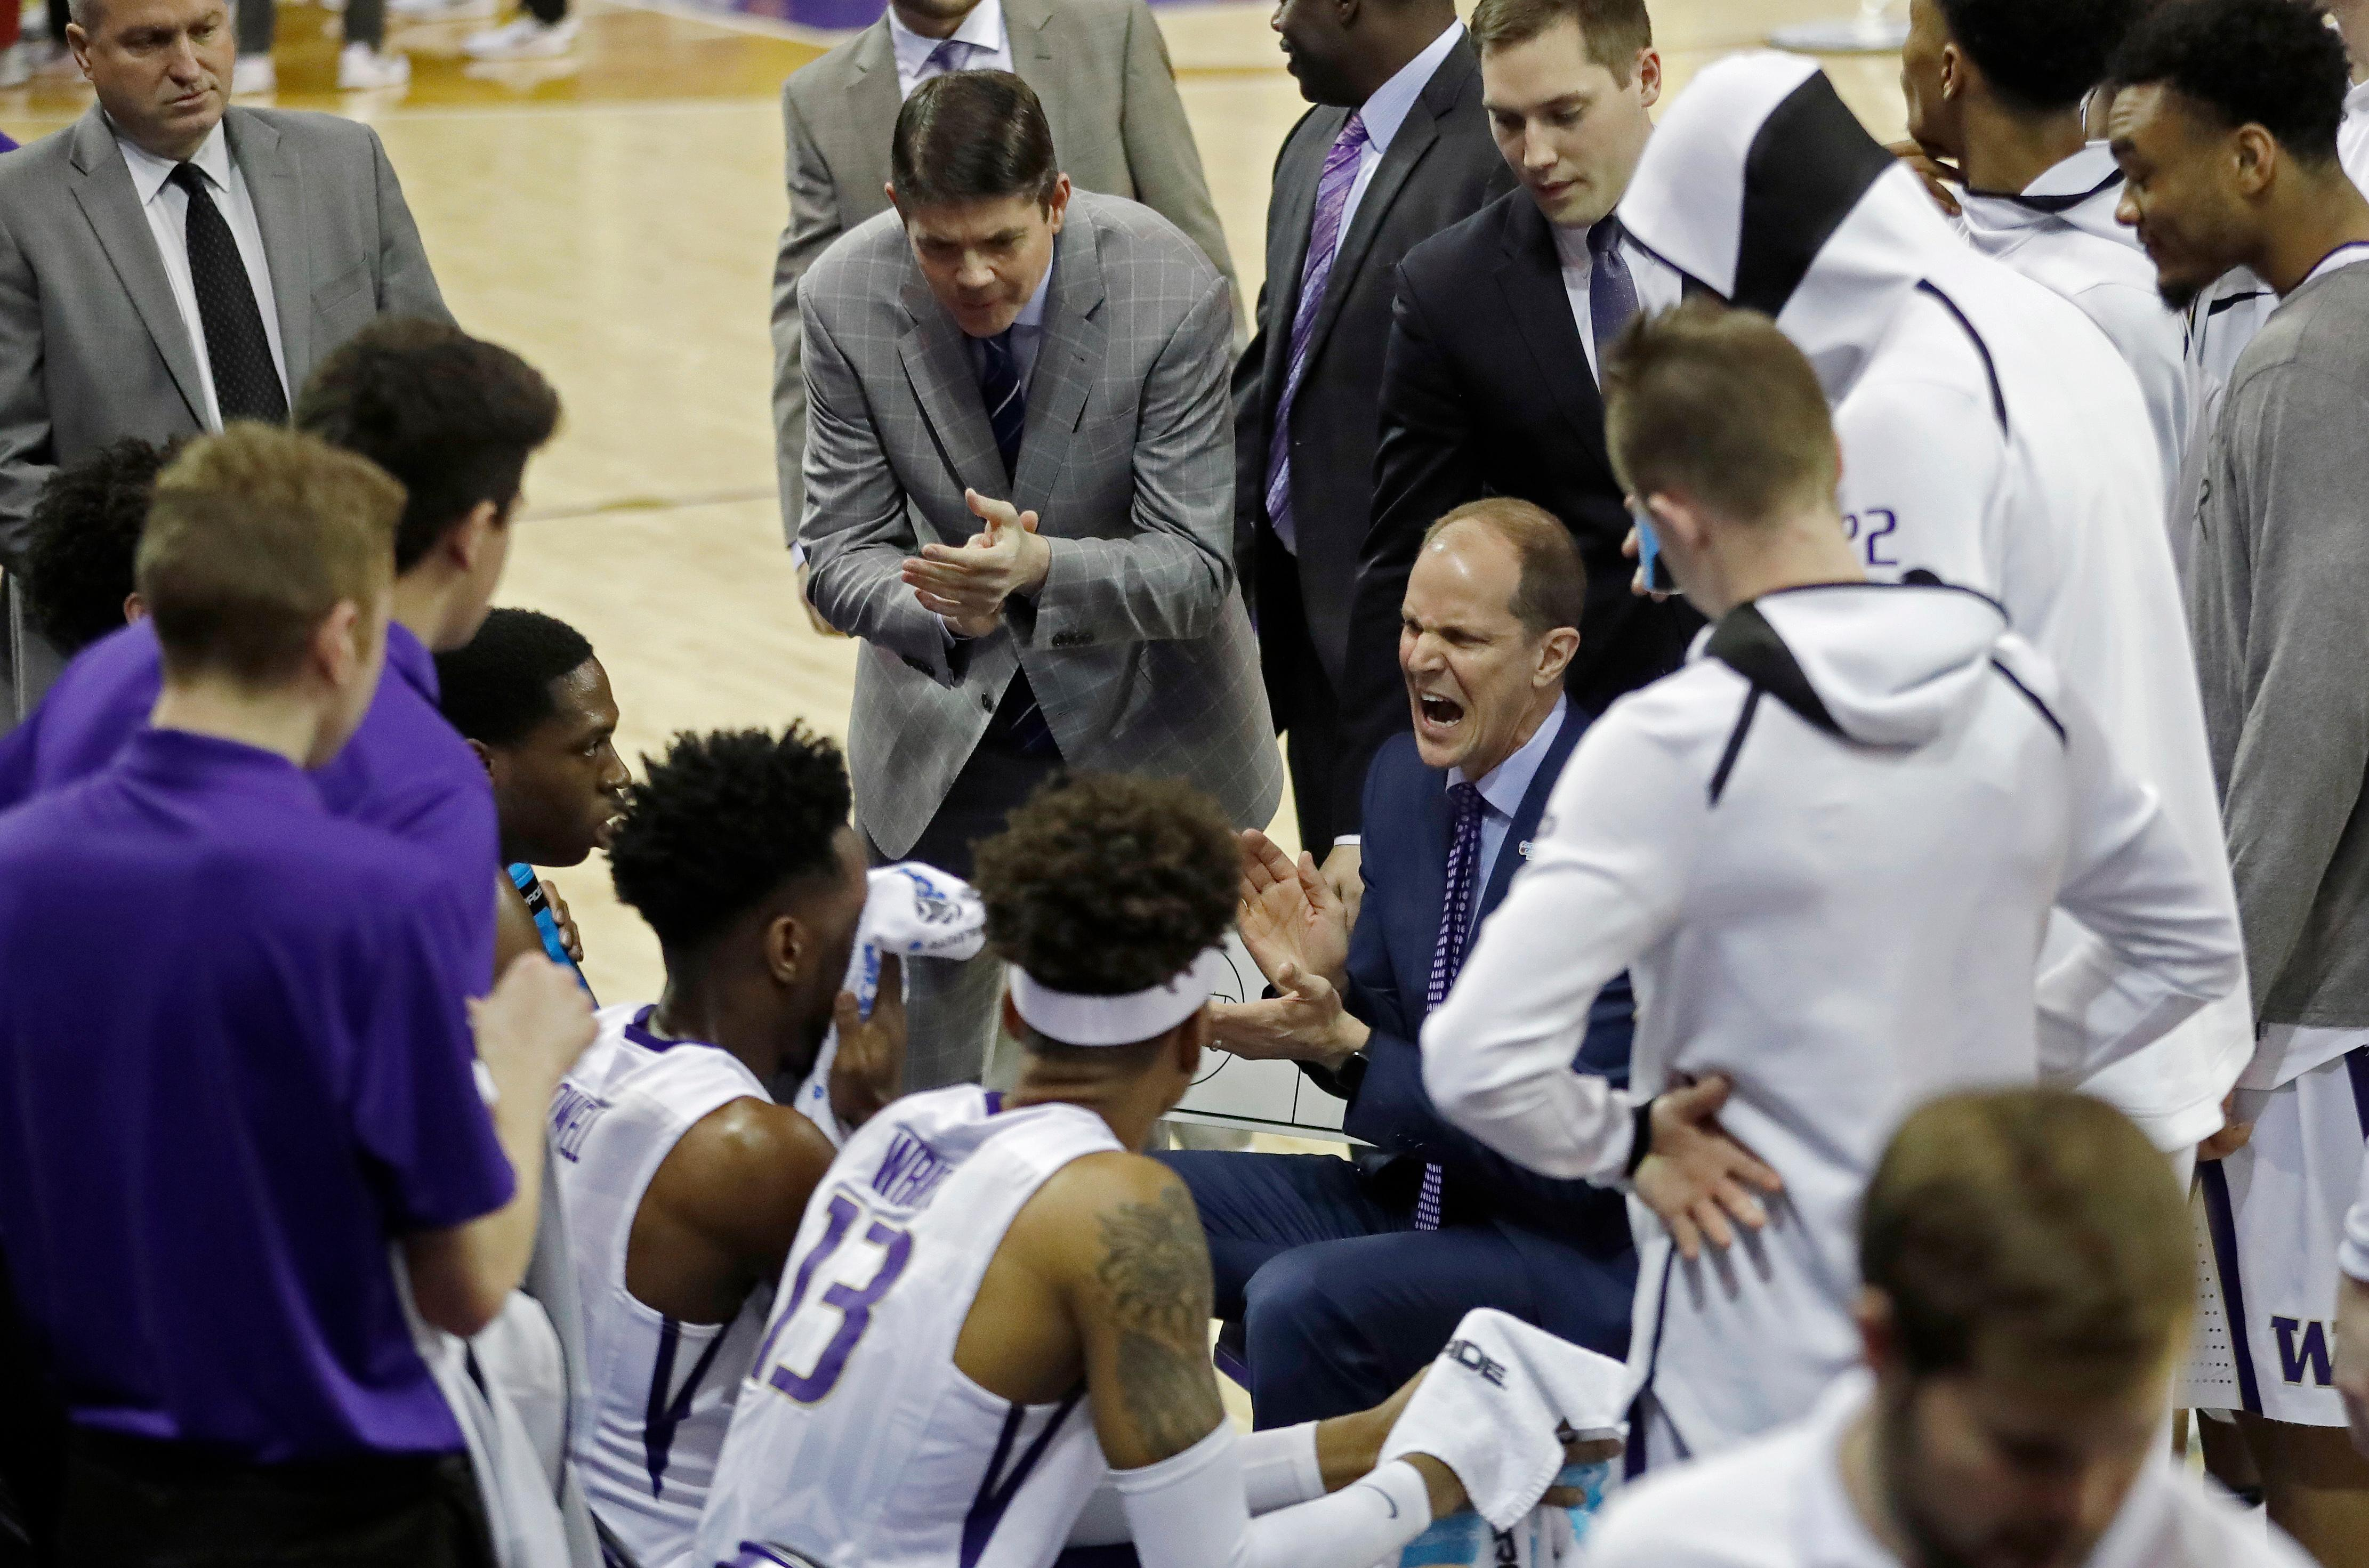 In this Sunday, Jan. 28, 2018 photo, Washington head coach Mike Hopkins, center right, fires up his team during a time out huddle at the bench during an NCAA college basketball game against Washington State in Seattle. One of the most surprising stories in college basketball is what Hopkins is doing in his first season at Washington and how the Huskies are in the conversation for an NCAA bid entering February. (AP Photo/Ted S. Warren)